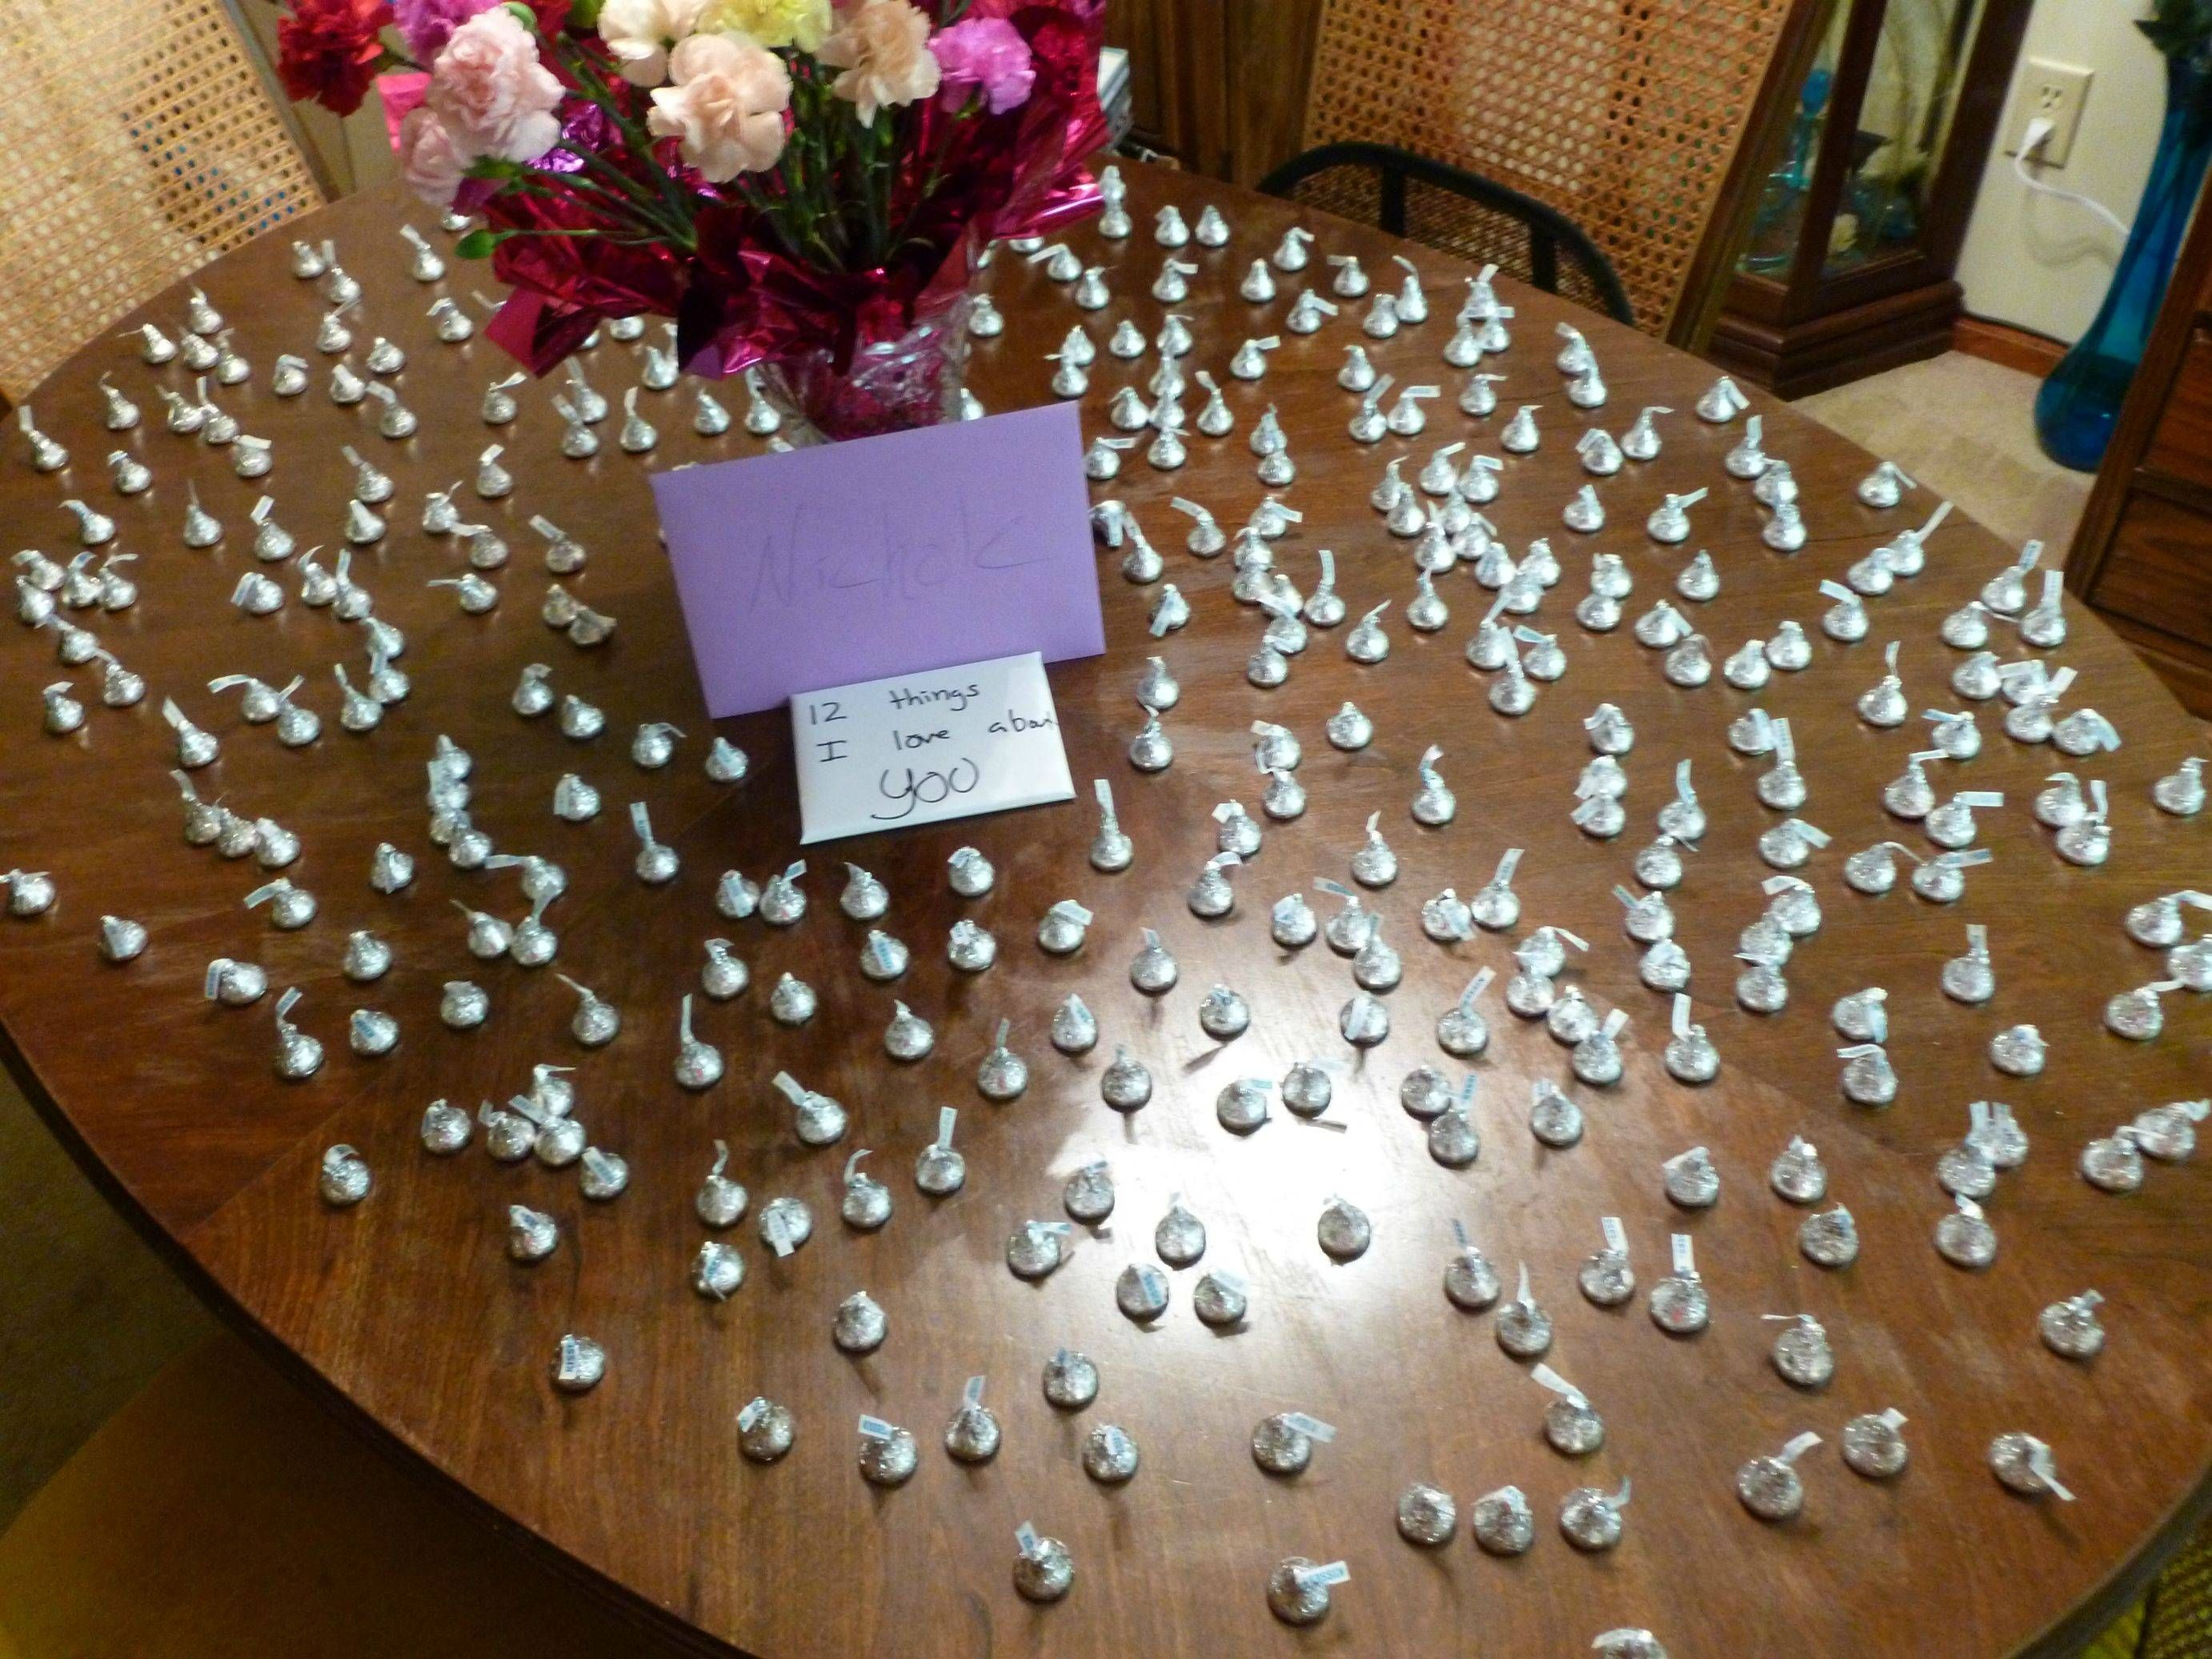 For my girlfriend and my 1 year, I bought her 365 kisses